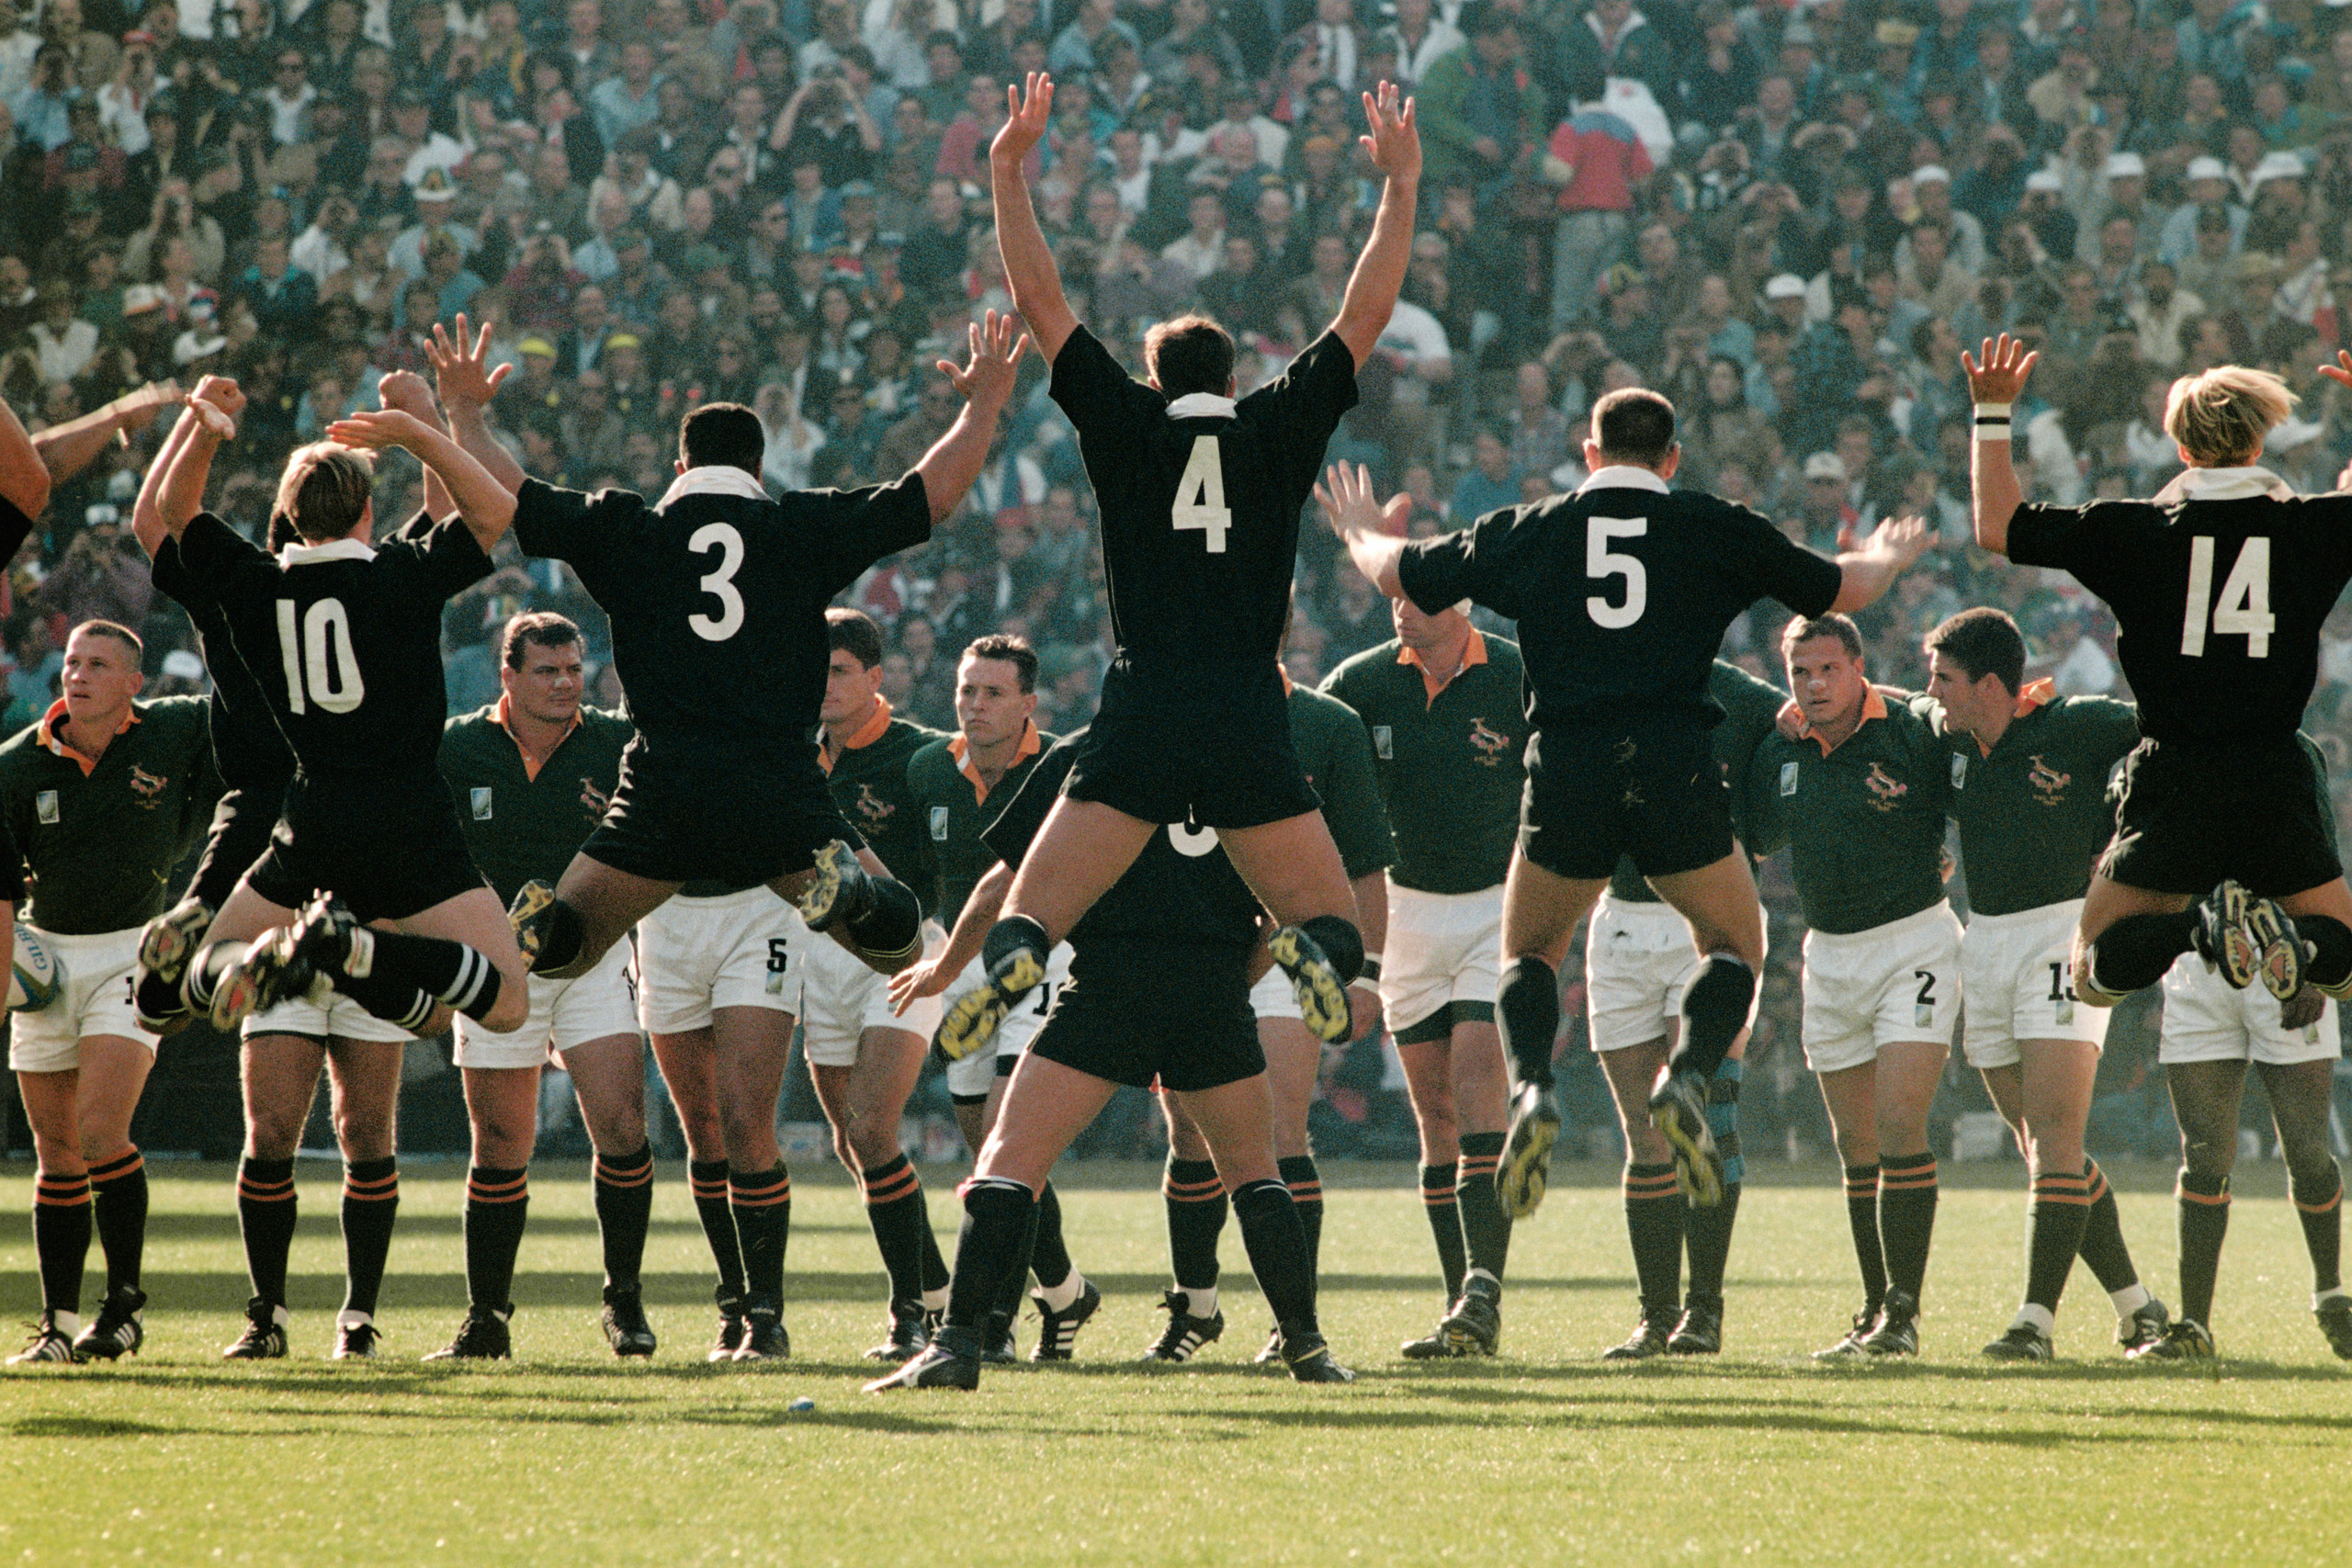 New Zealand's players perform their famous Haka in front of the South African team before the 1995 Rugby Union World Cup final.